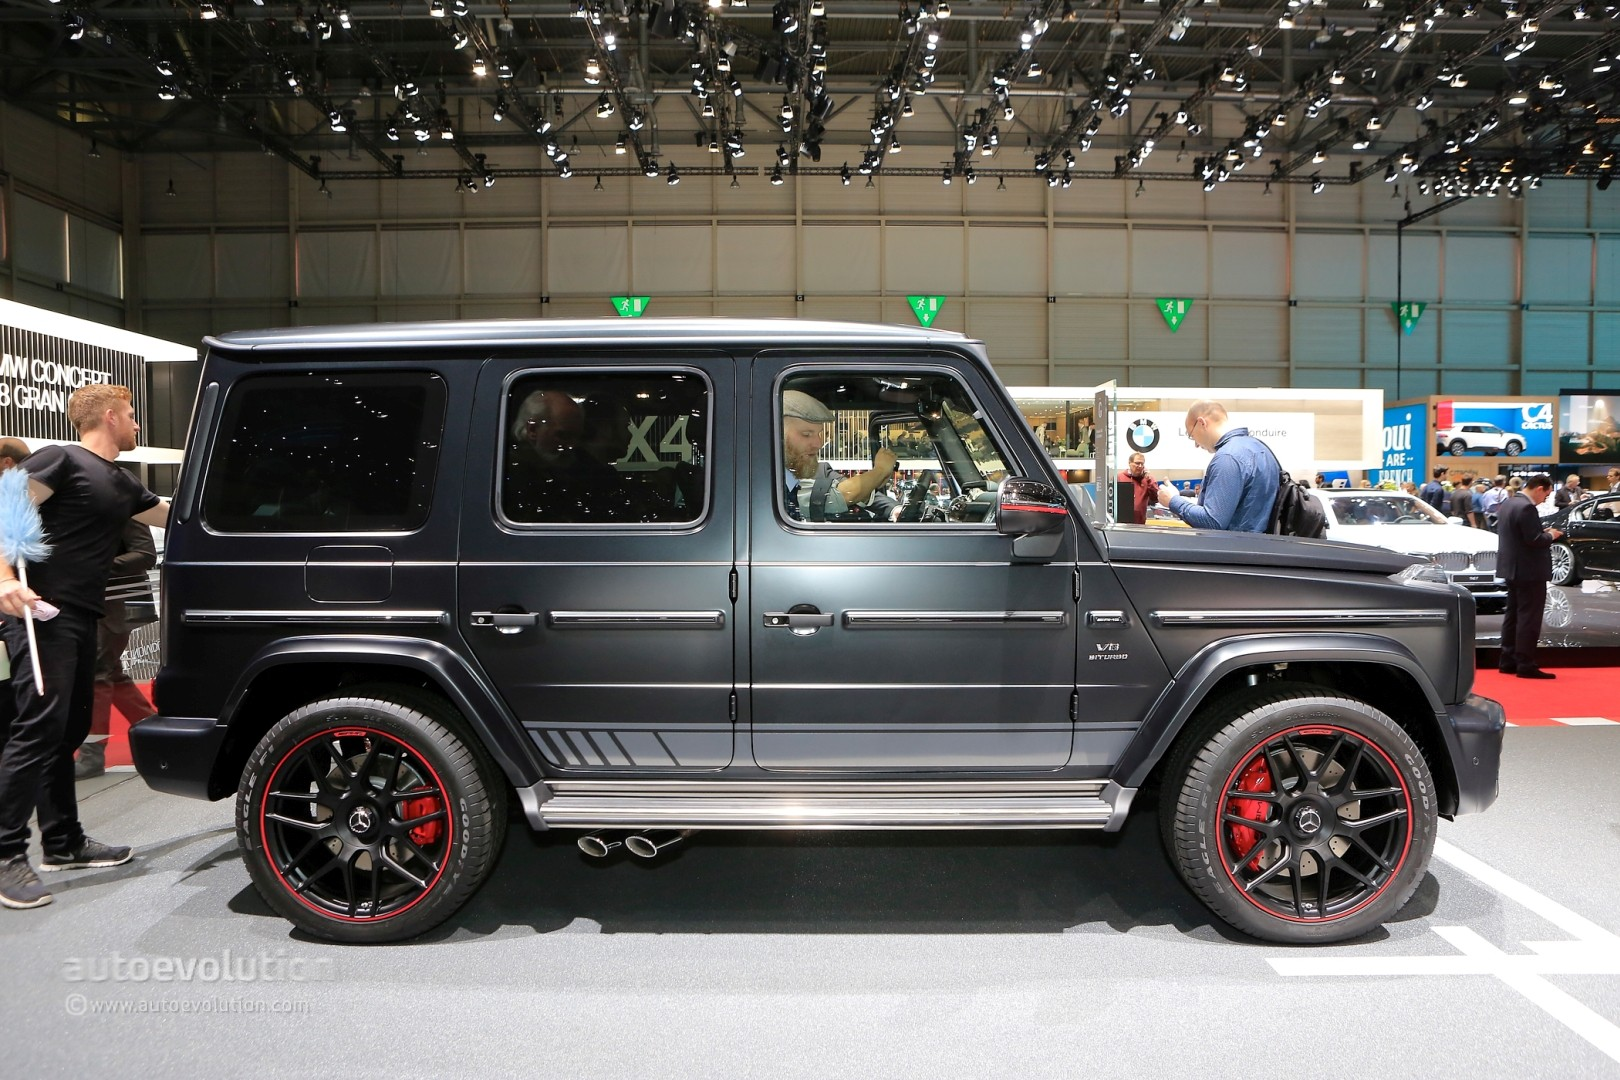 2019 mercedes amg g63 edition 1 shows darth vader spec in geneva autoevolution. Black Bedroom Furniture Sets. Home Design Ideas